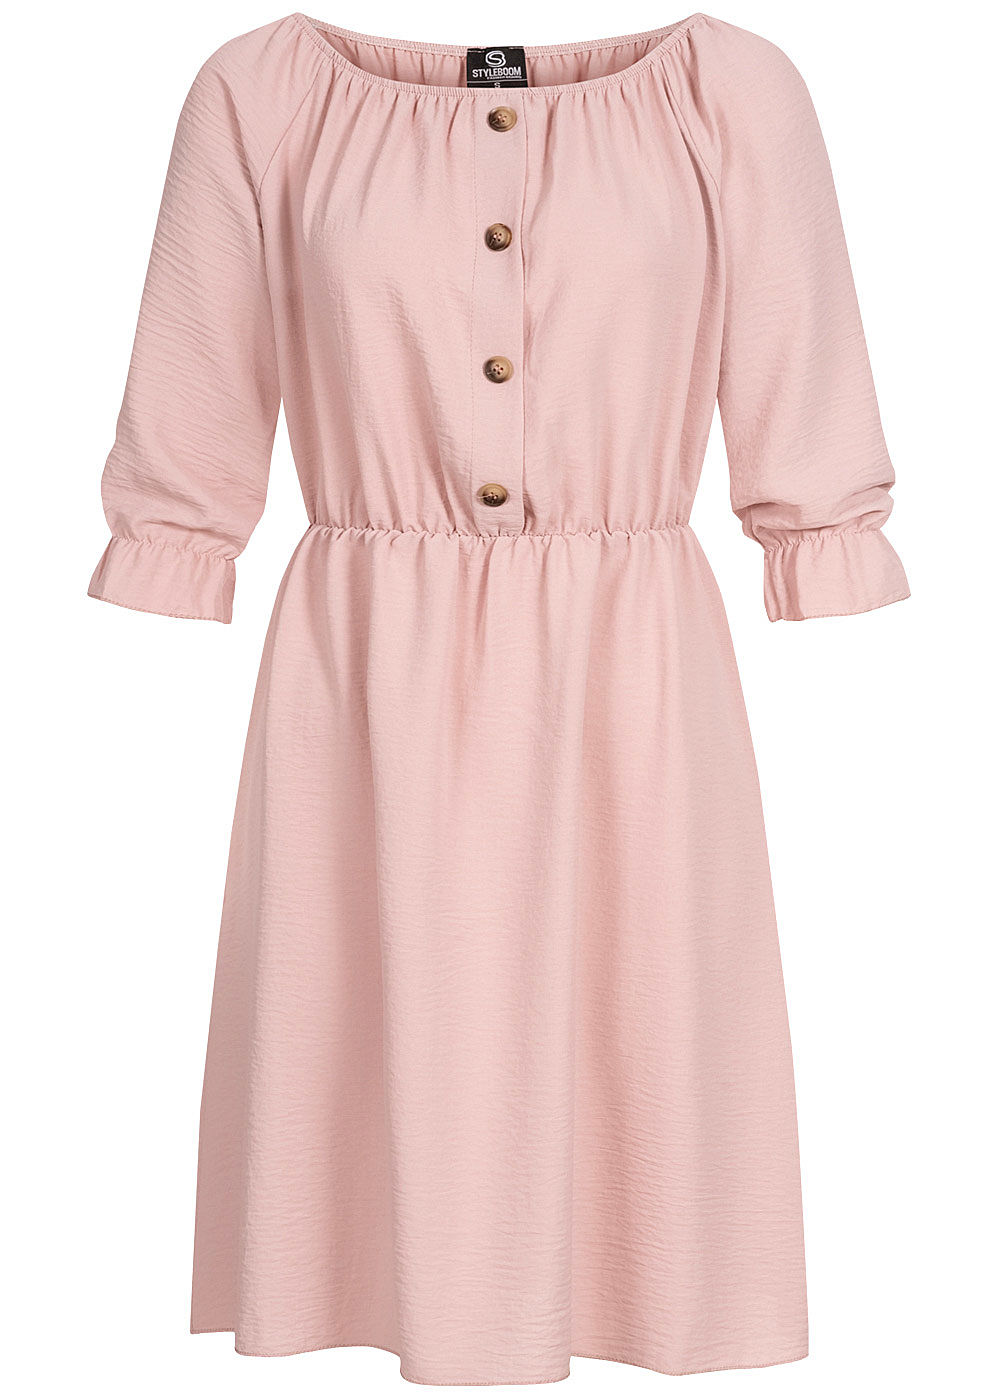 Styleboom Fashion Damen Mini Kleid Deko Knopfleiste rosa - Art.-Nr.: 20036351